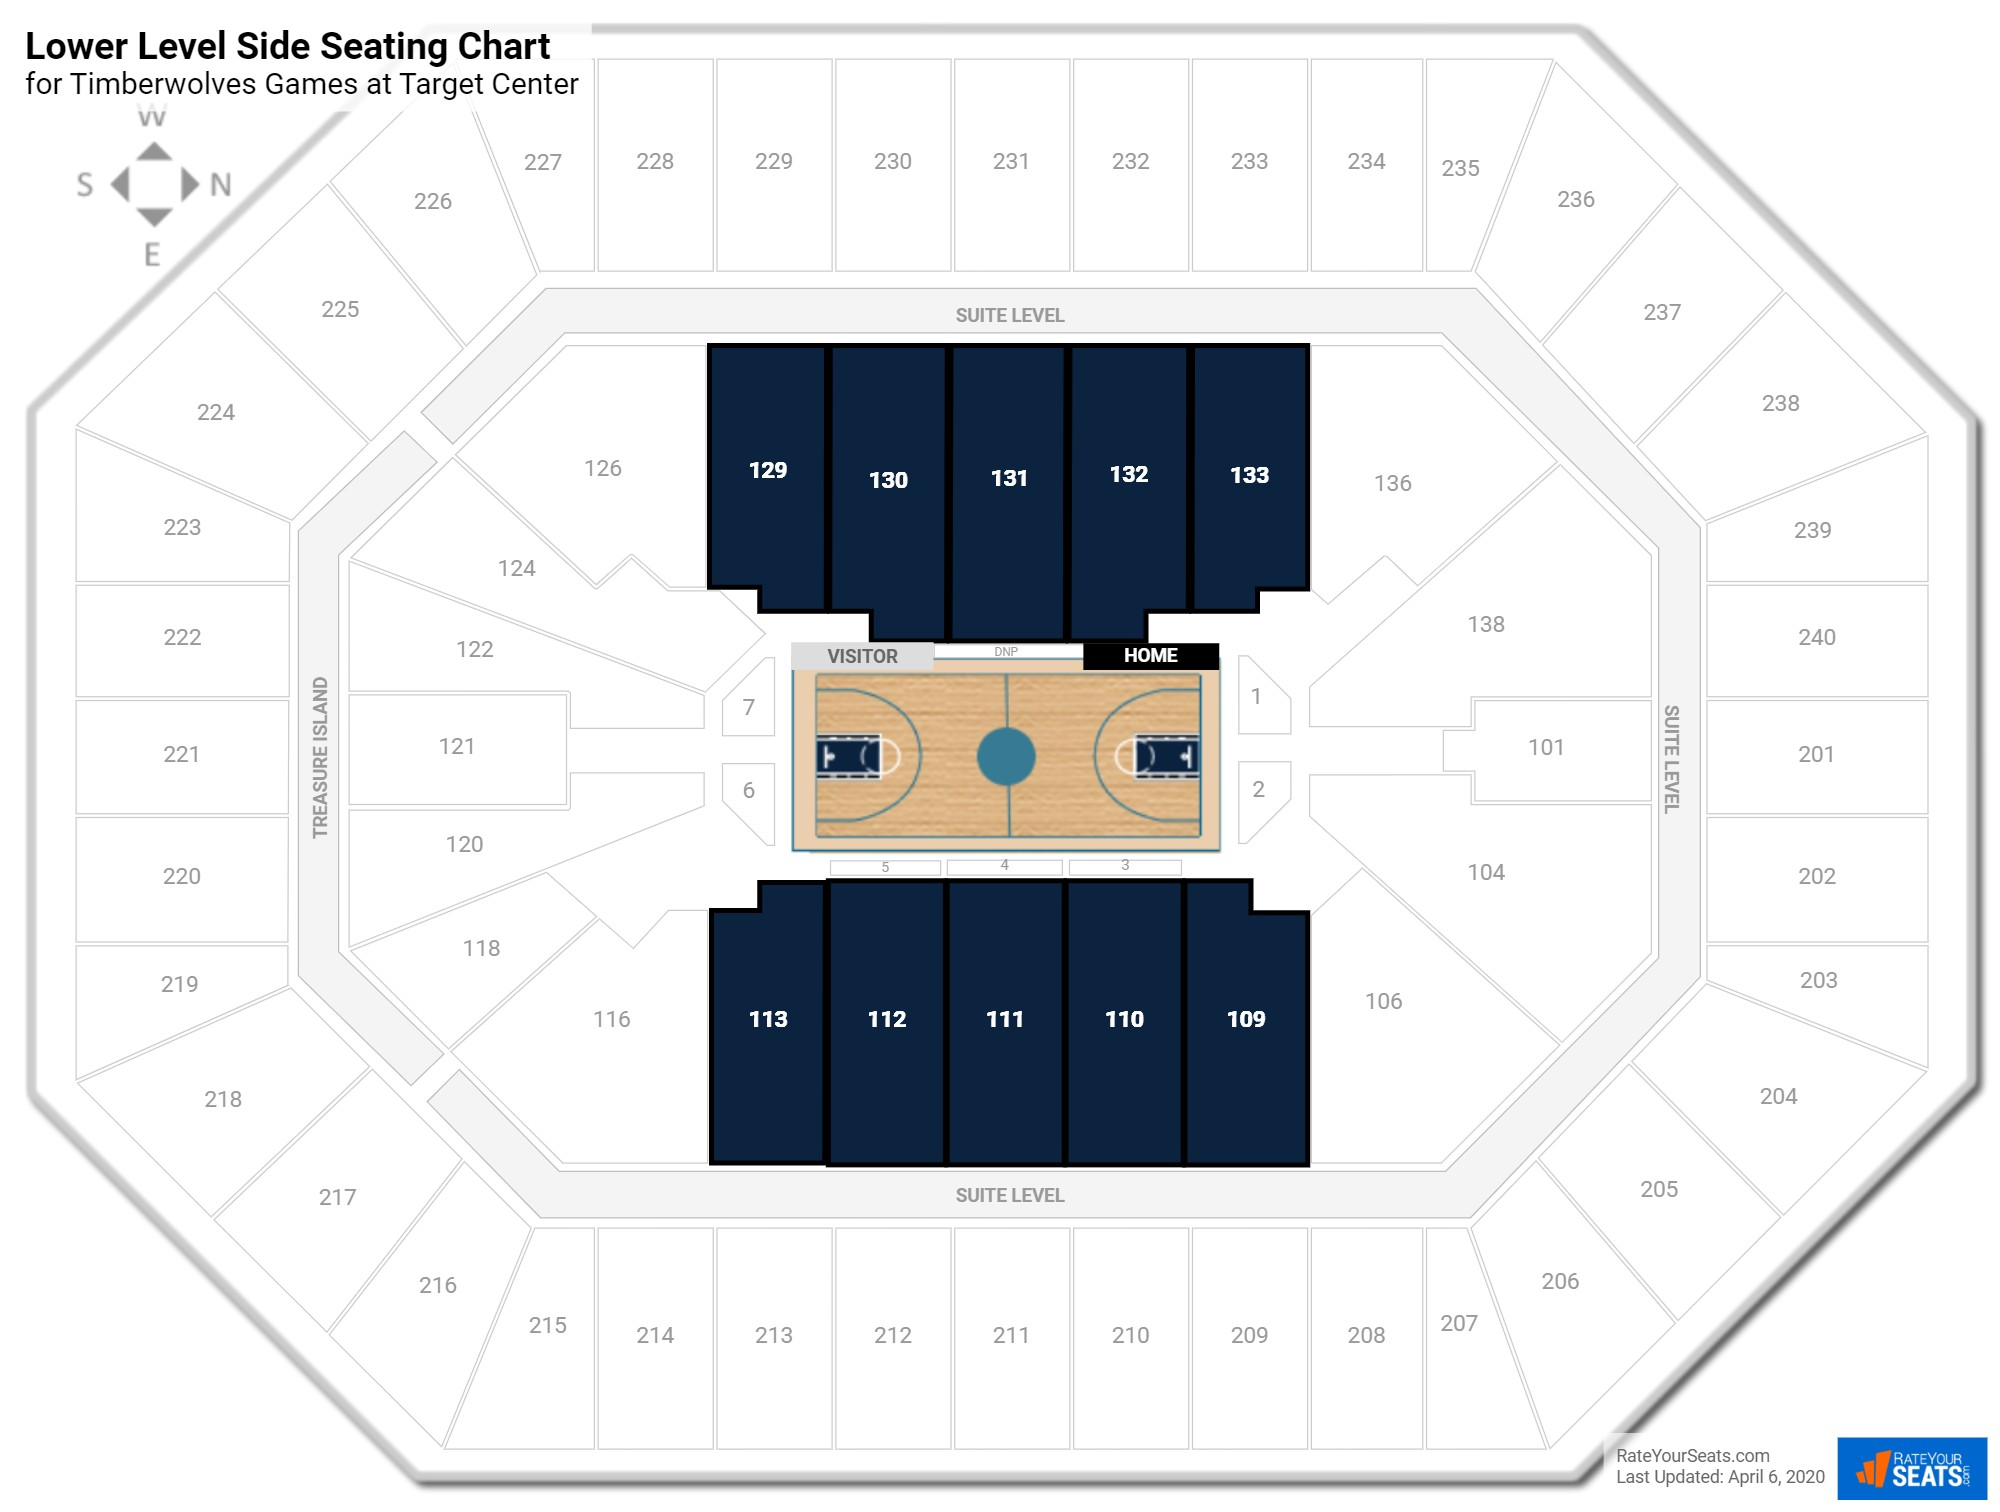 Target Center Lower Level Side seating chart